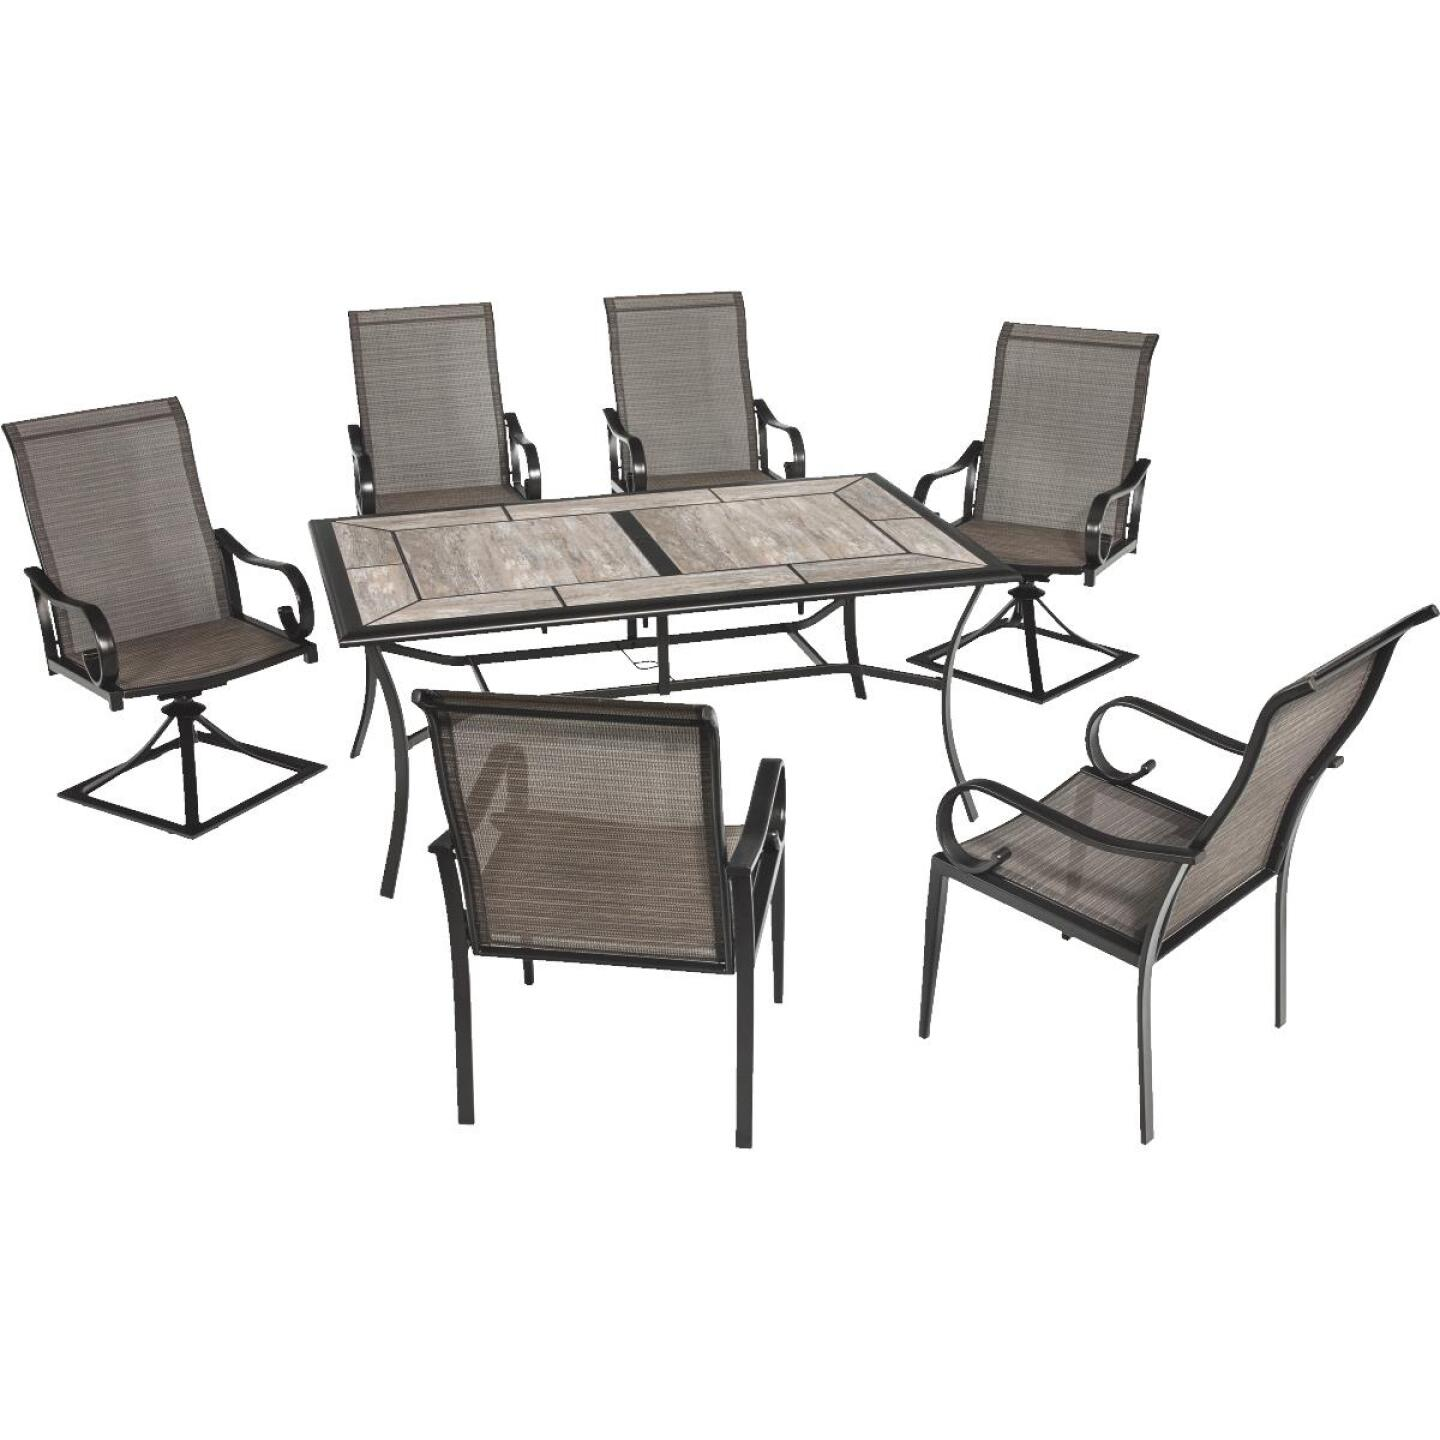 Outdoor Expressions Berkshire 7-Piece Dining Set Image 226